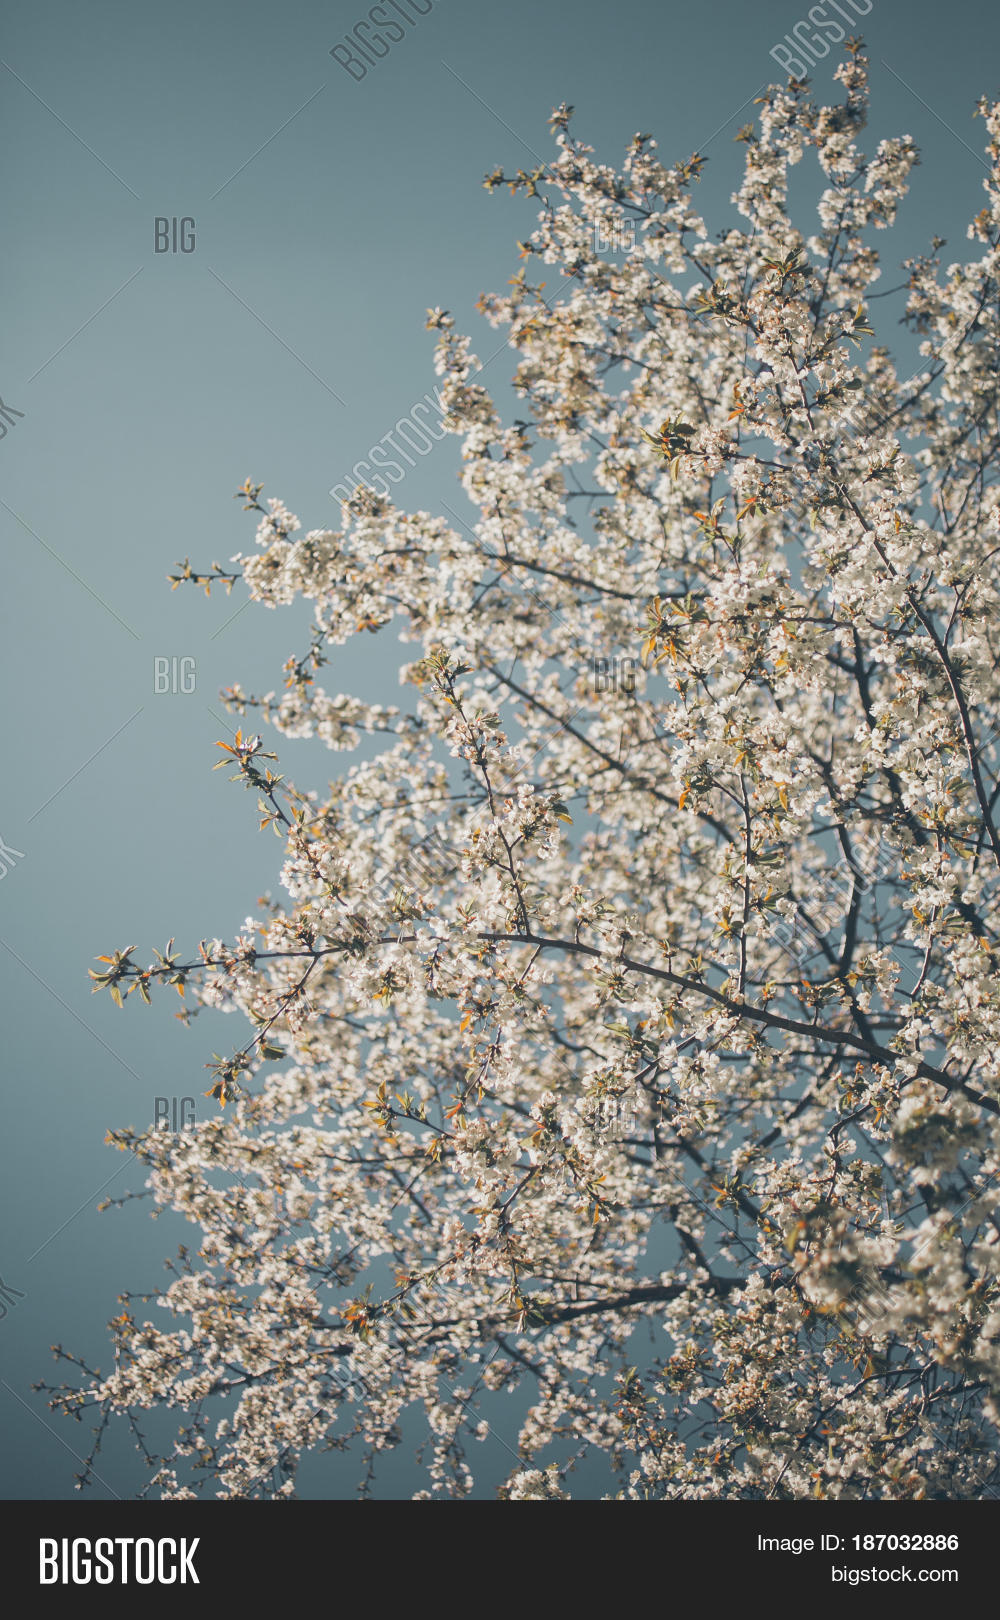 almond trees blooming image photo free trial bigstock